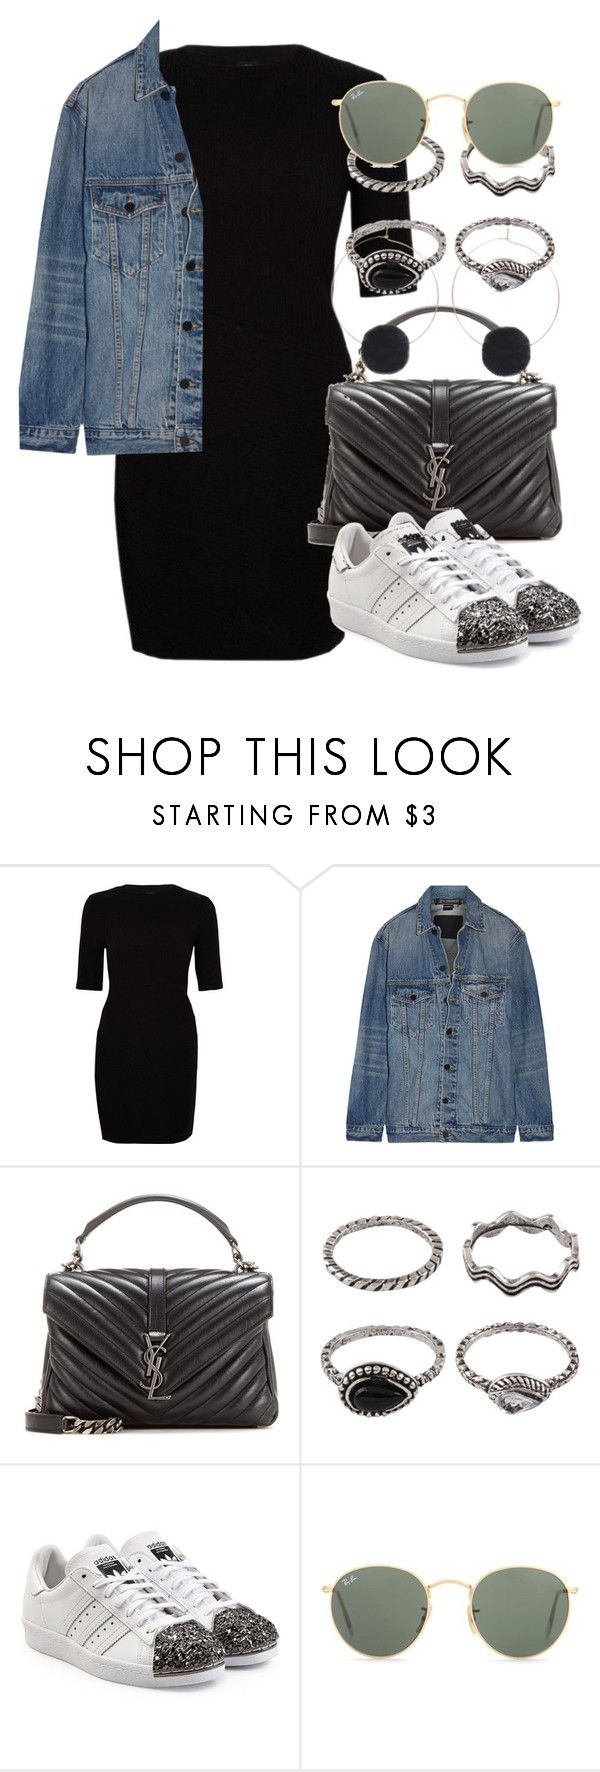 """""""*"""" by fashio-188 ❤ liked on Polyvore featuring River Island, Alexander Wang, Yves Saint Laurent, adidas Originals and Ray-Ban"""